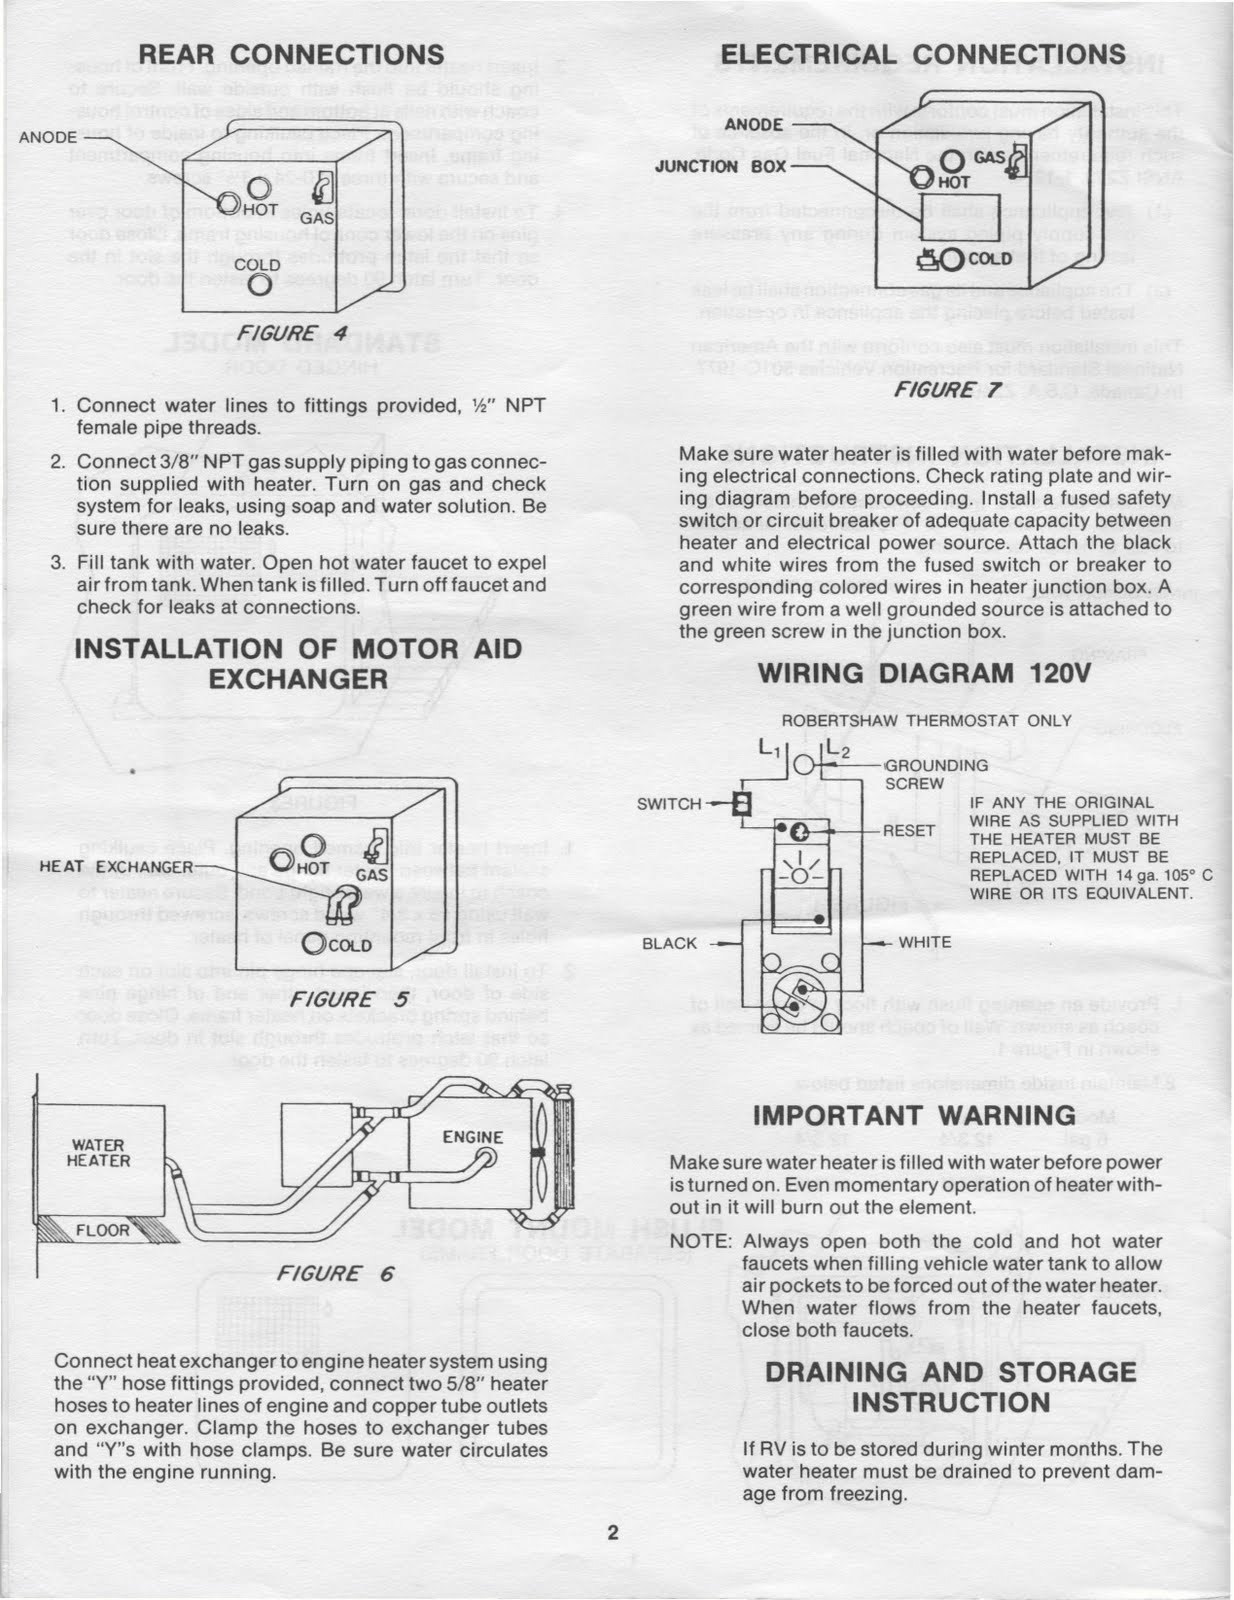 mor flo+water+heater0001%5B1%5D 003 100 [ motorhome wiring diagram manual ] trailer wiring diagram Basic Electrical Wiring Diagrams at bayanpartner.co